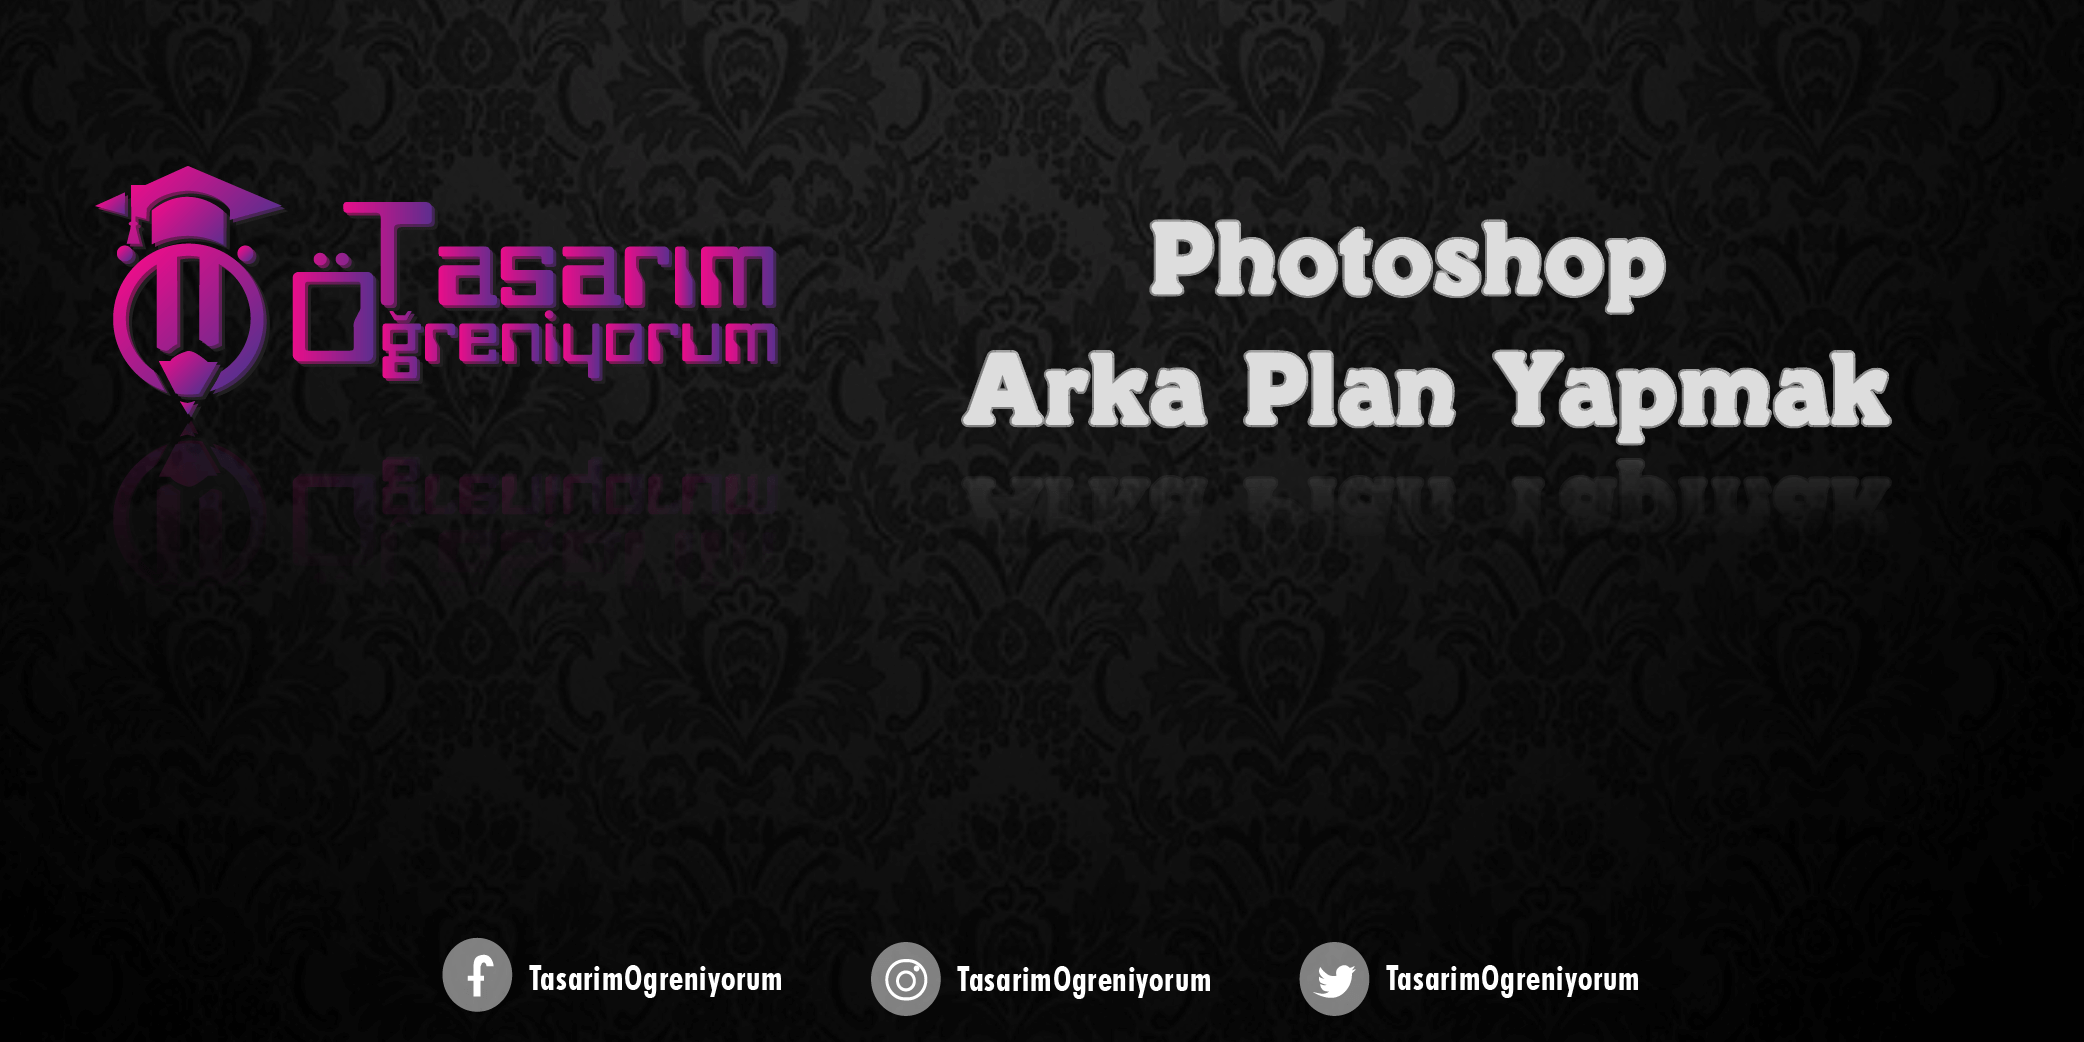 Photo of Photoshop Arka Plan Yapmak